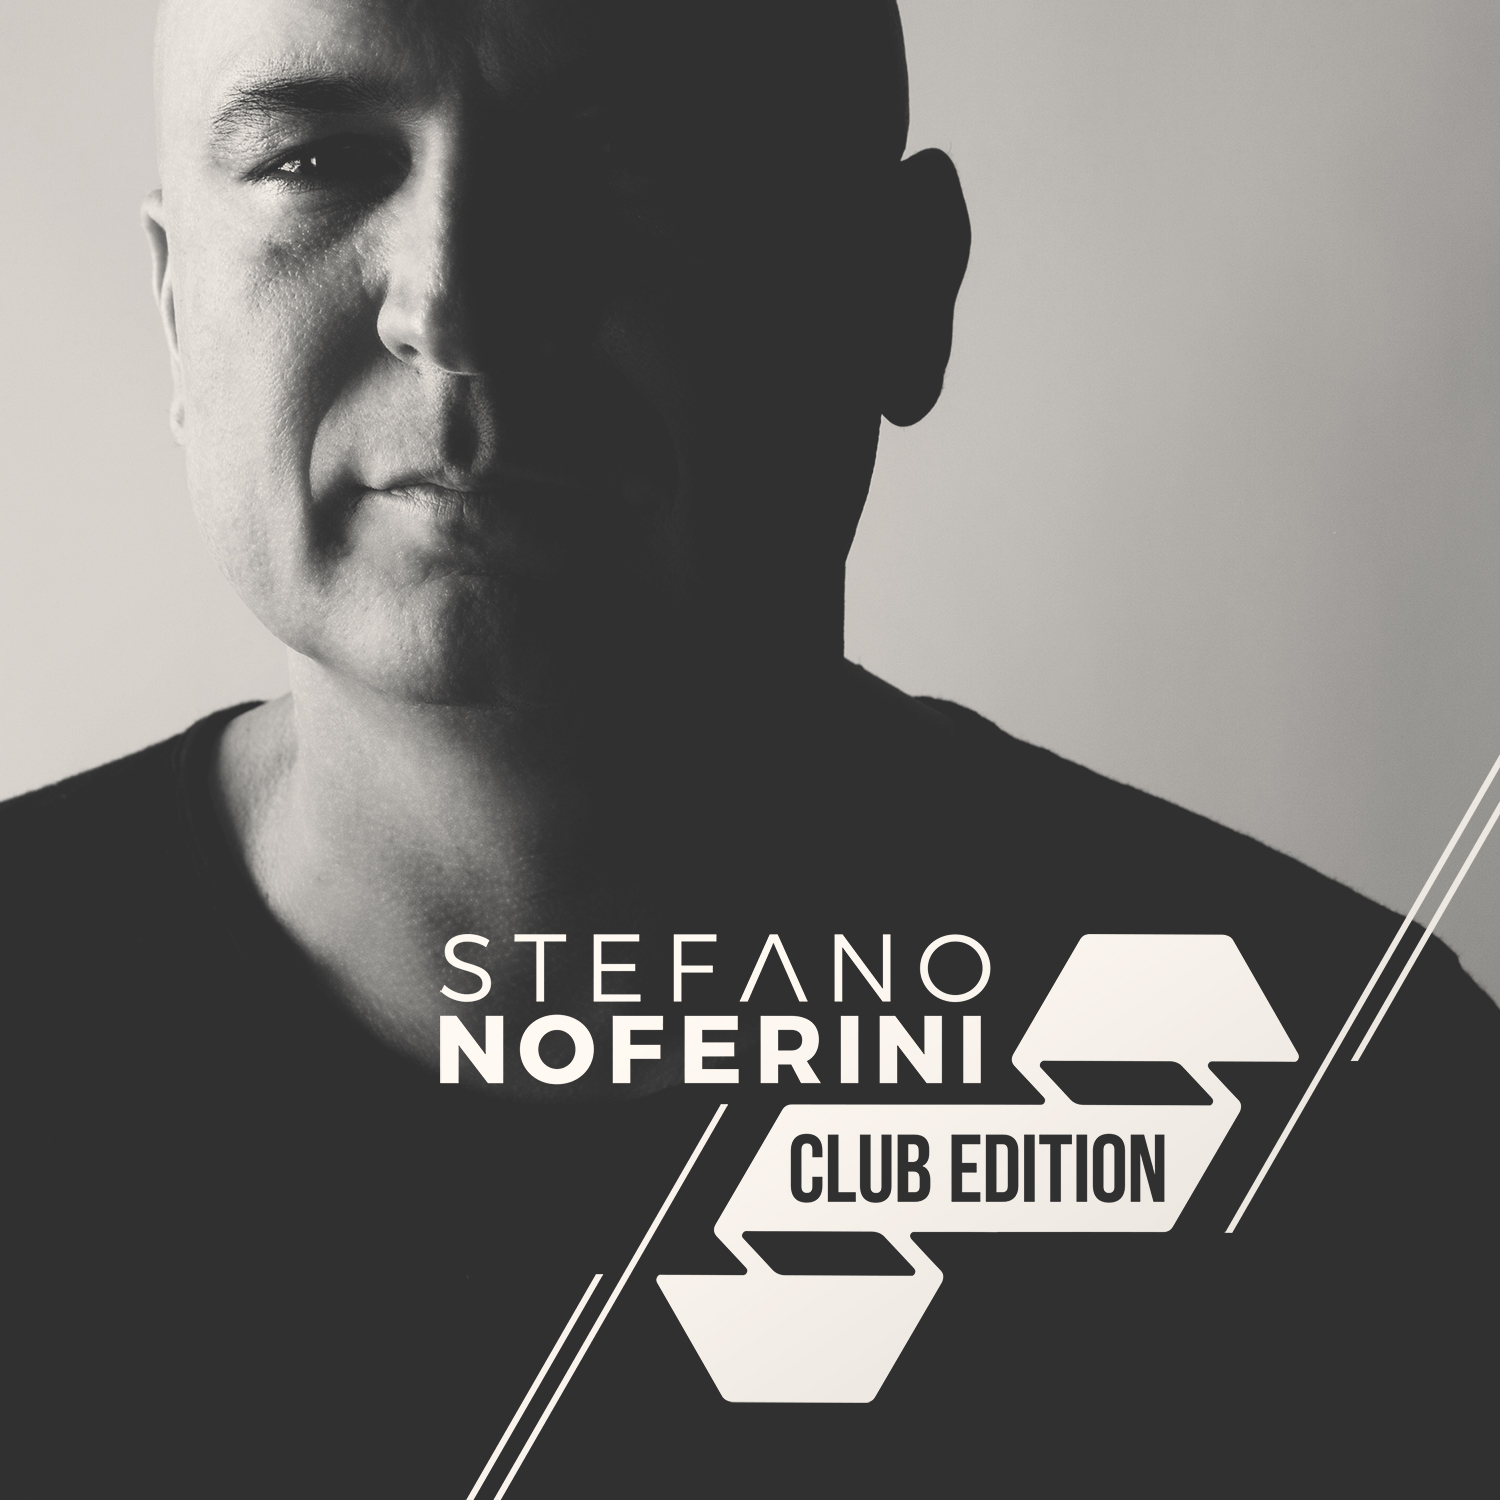 Delta Podcasts - Club Edition 261 with Stefano Noferini (Live from Istanbul) (28.09.2017)